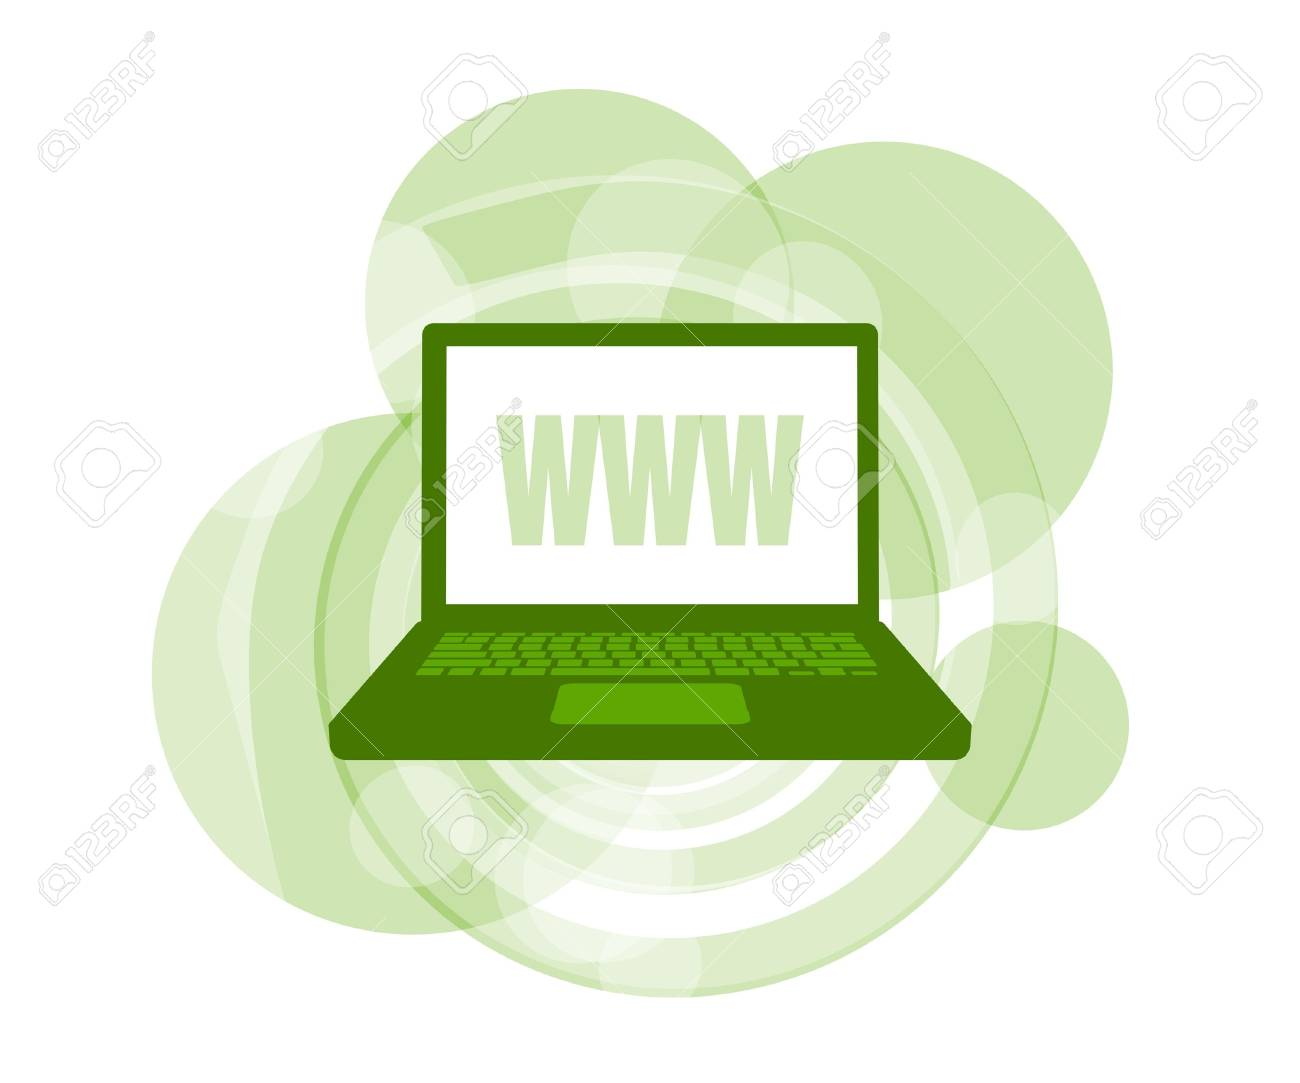 3D illustration of laptop computer displaying WWW against green background - 5826390